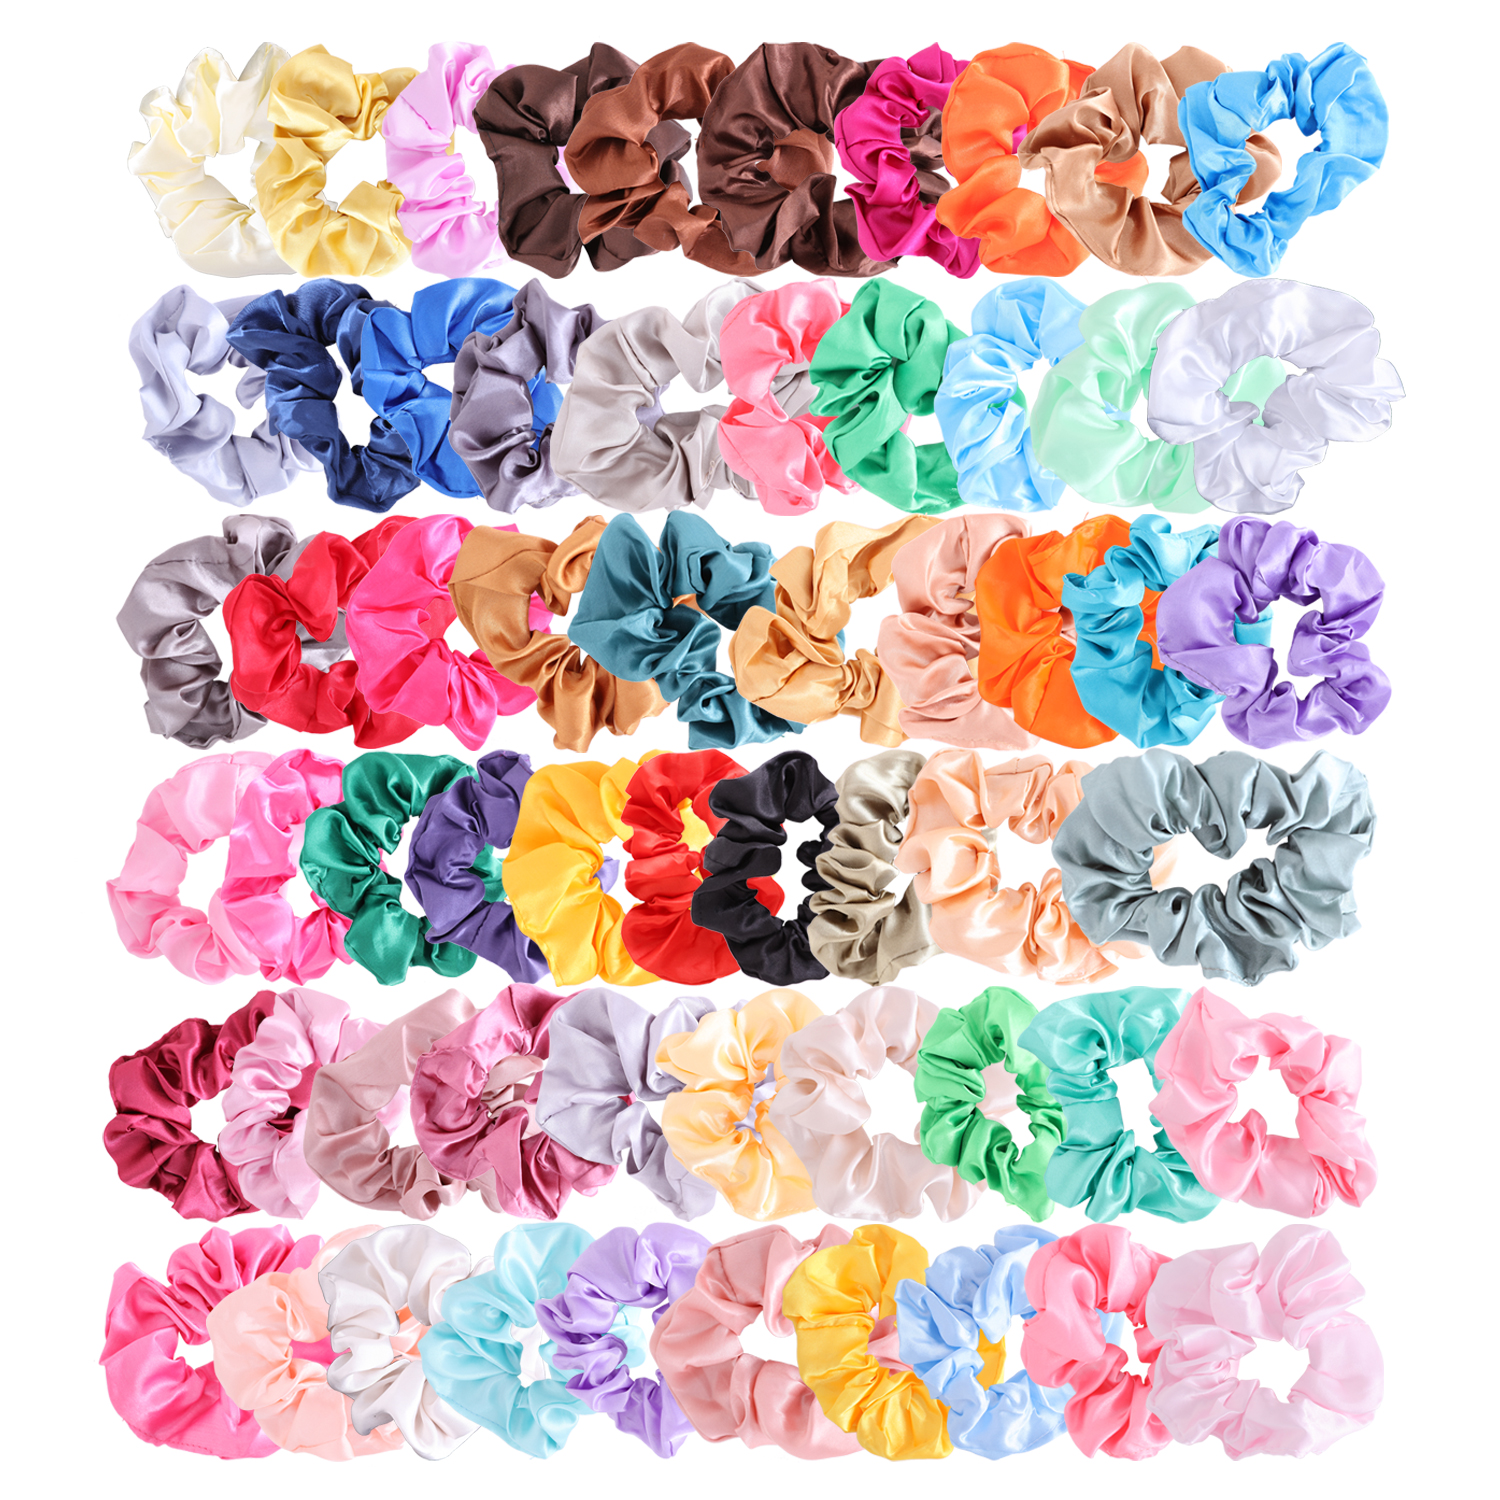 Colorful Silk Satin Scrunchy Set 60Pcs  Strong Elastic Bobble Hair Bands Traceless Hair Rope Accessory For Ponytail Holder